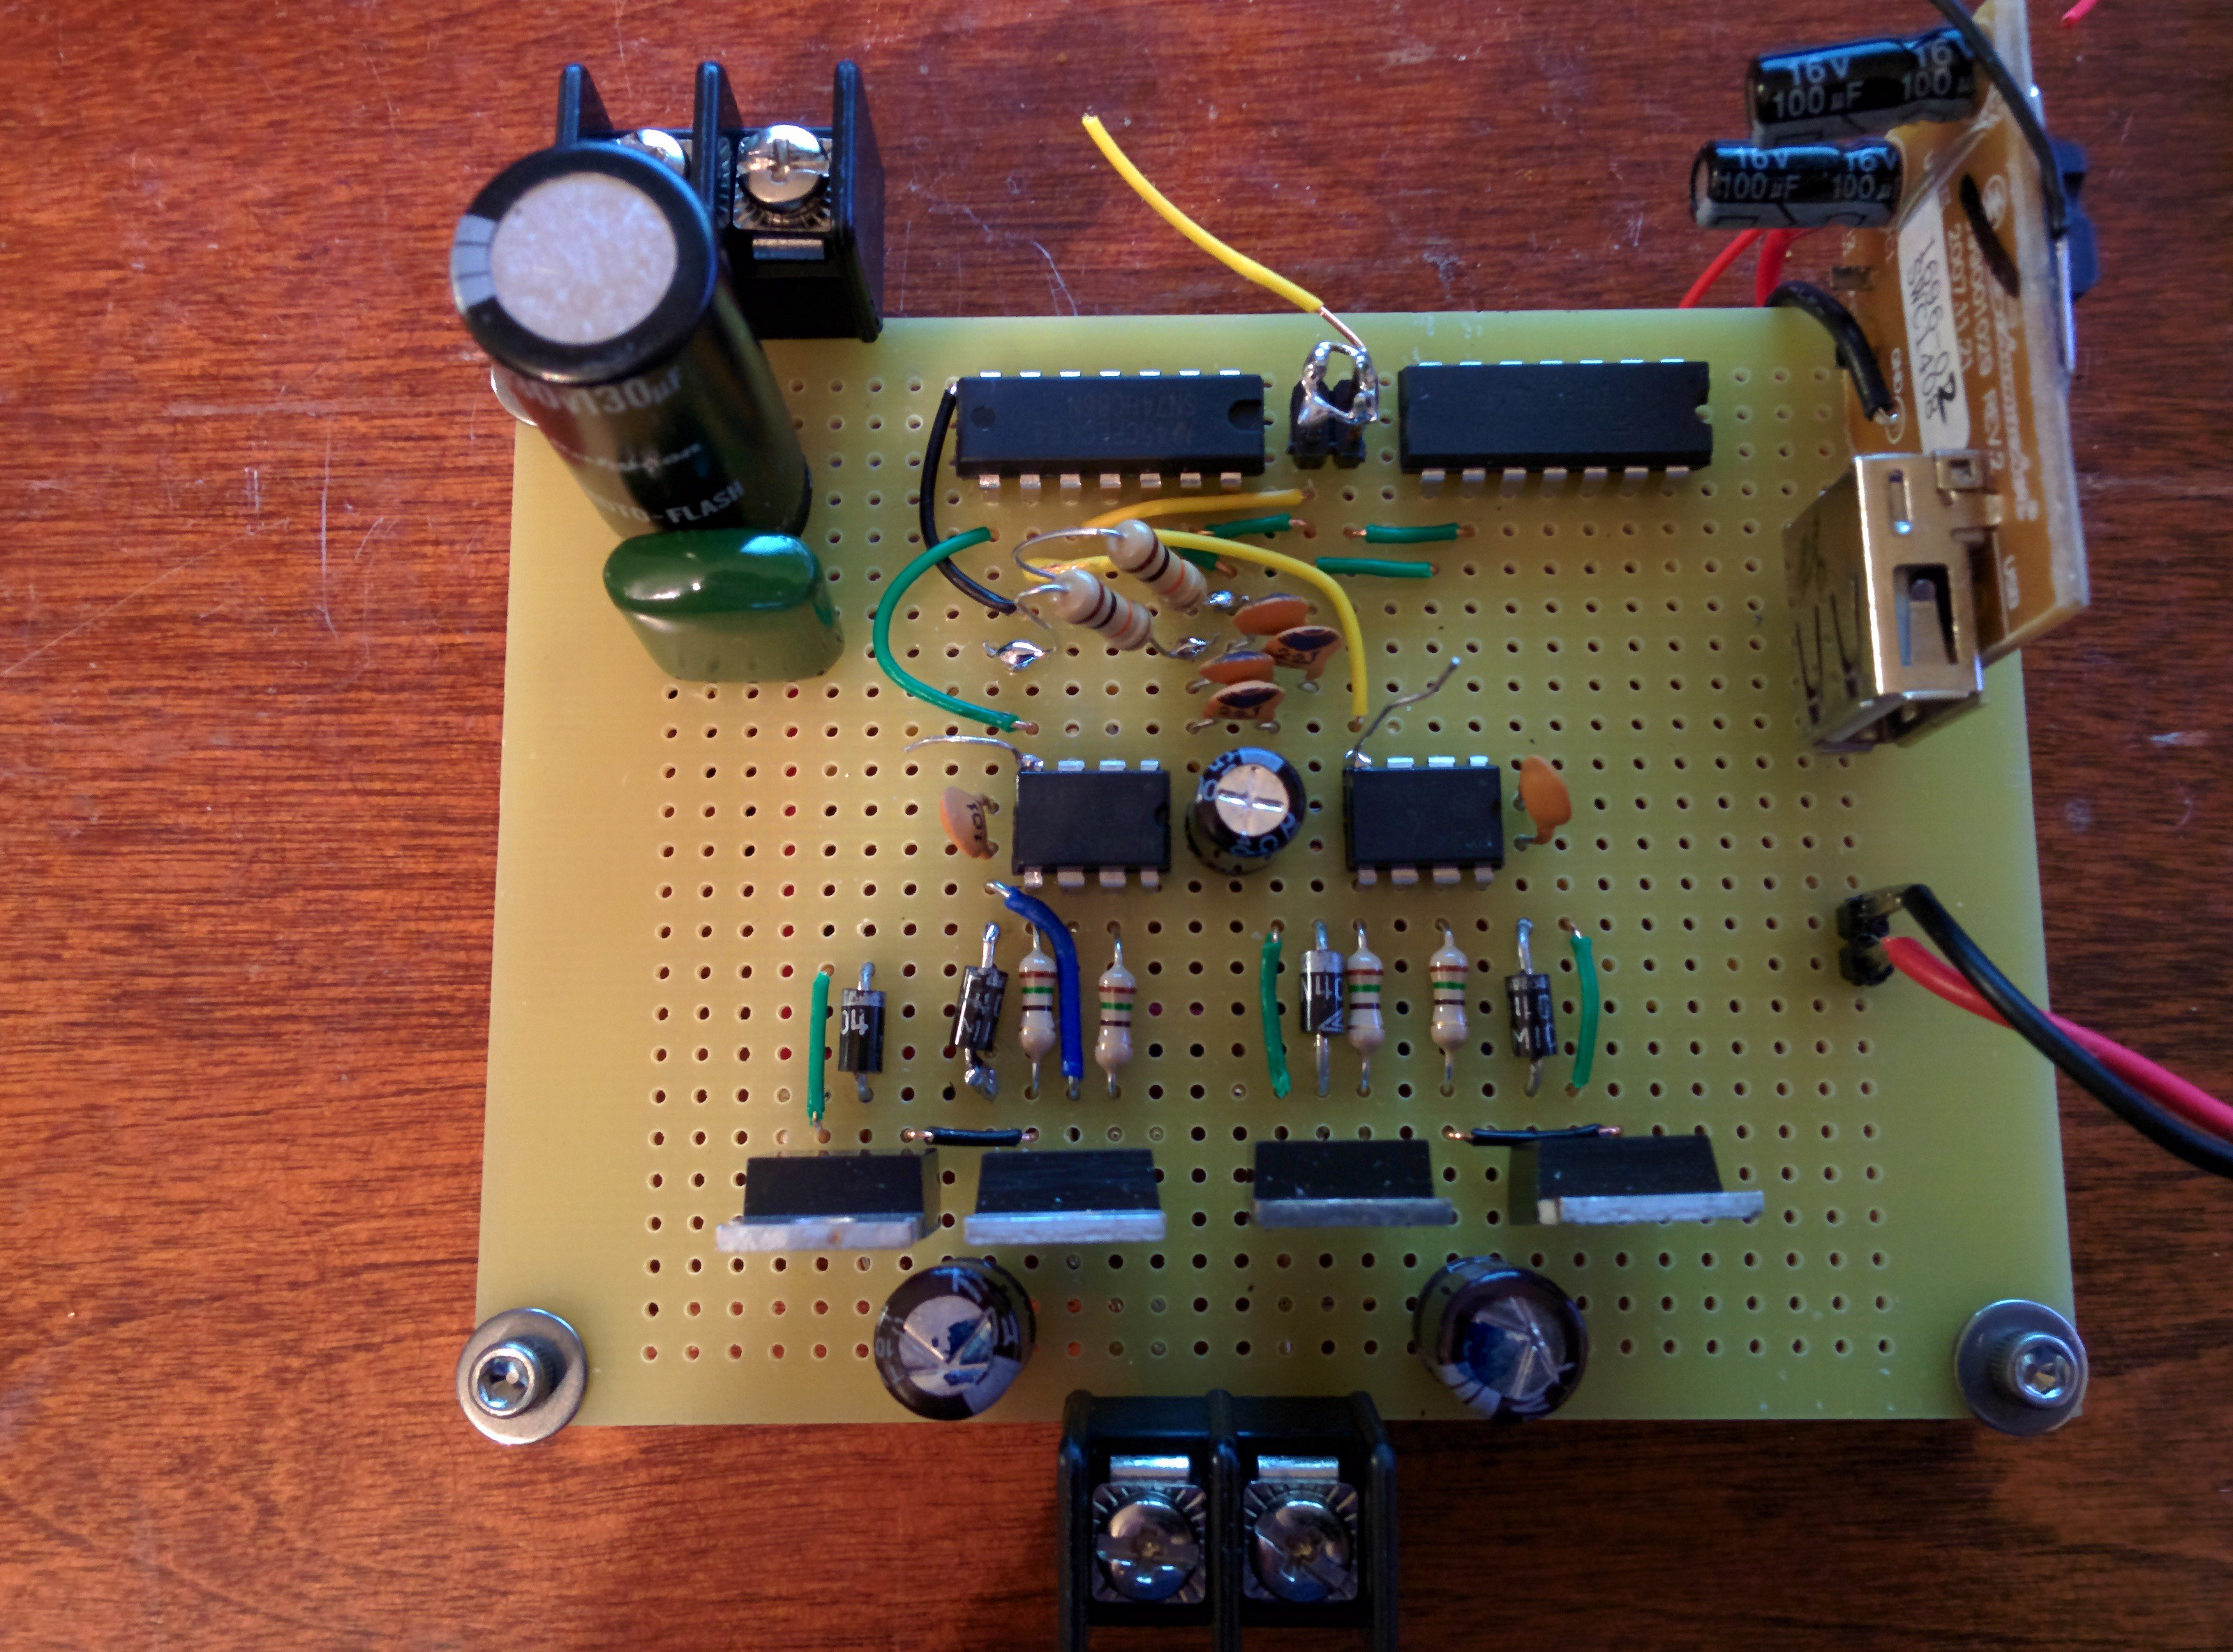 Class D Subwoofer Amplifier Out Of Scrap Image Audio Circuit Board Download This Is The Business Stage Amplfiers Now That We Have A Square Wave From First Can Use It To Switch Big Load